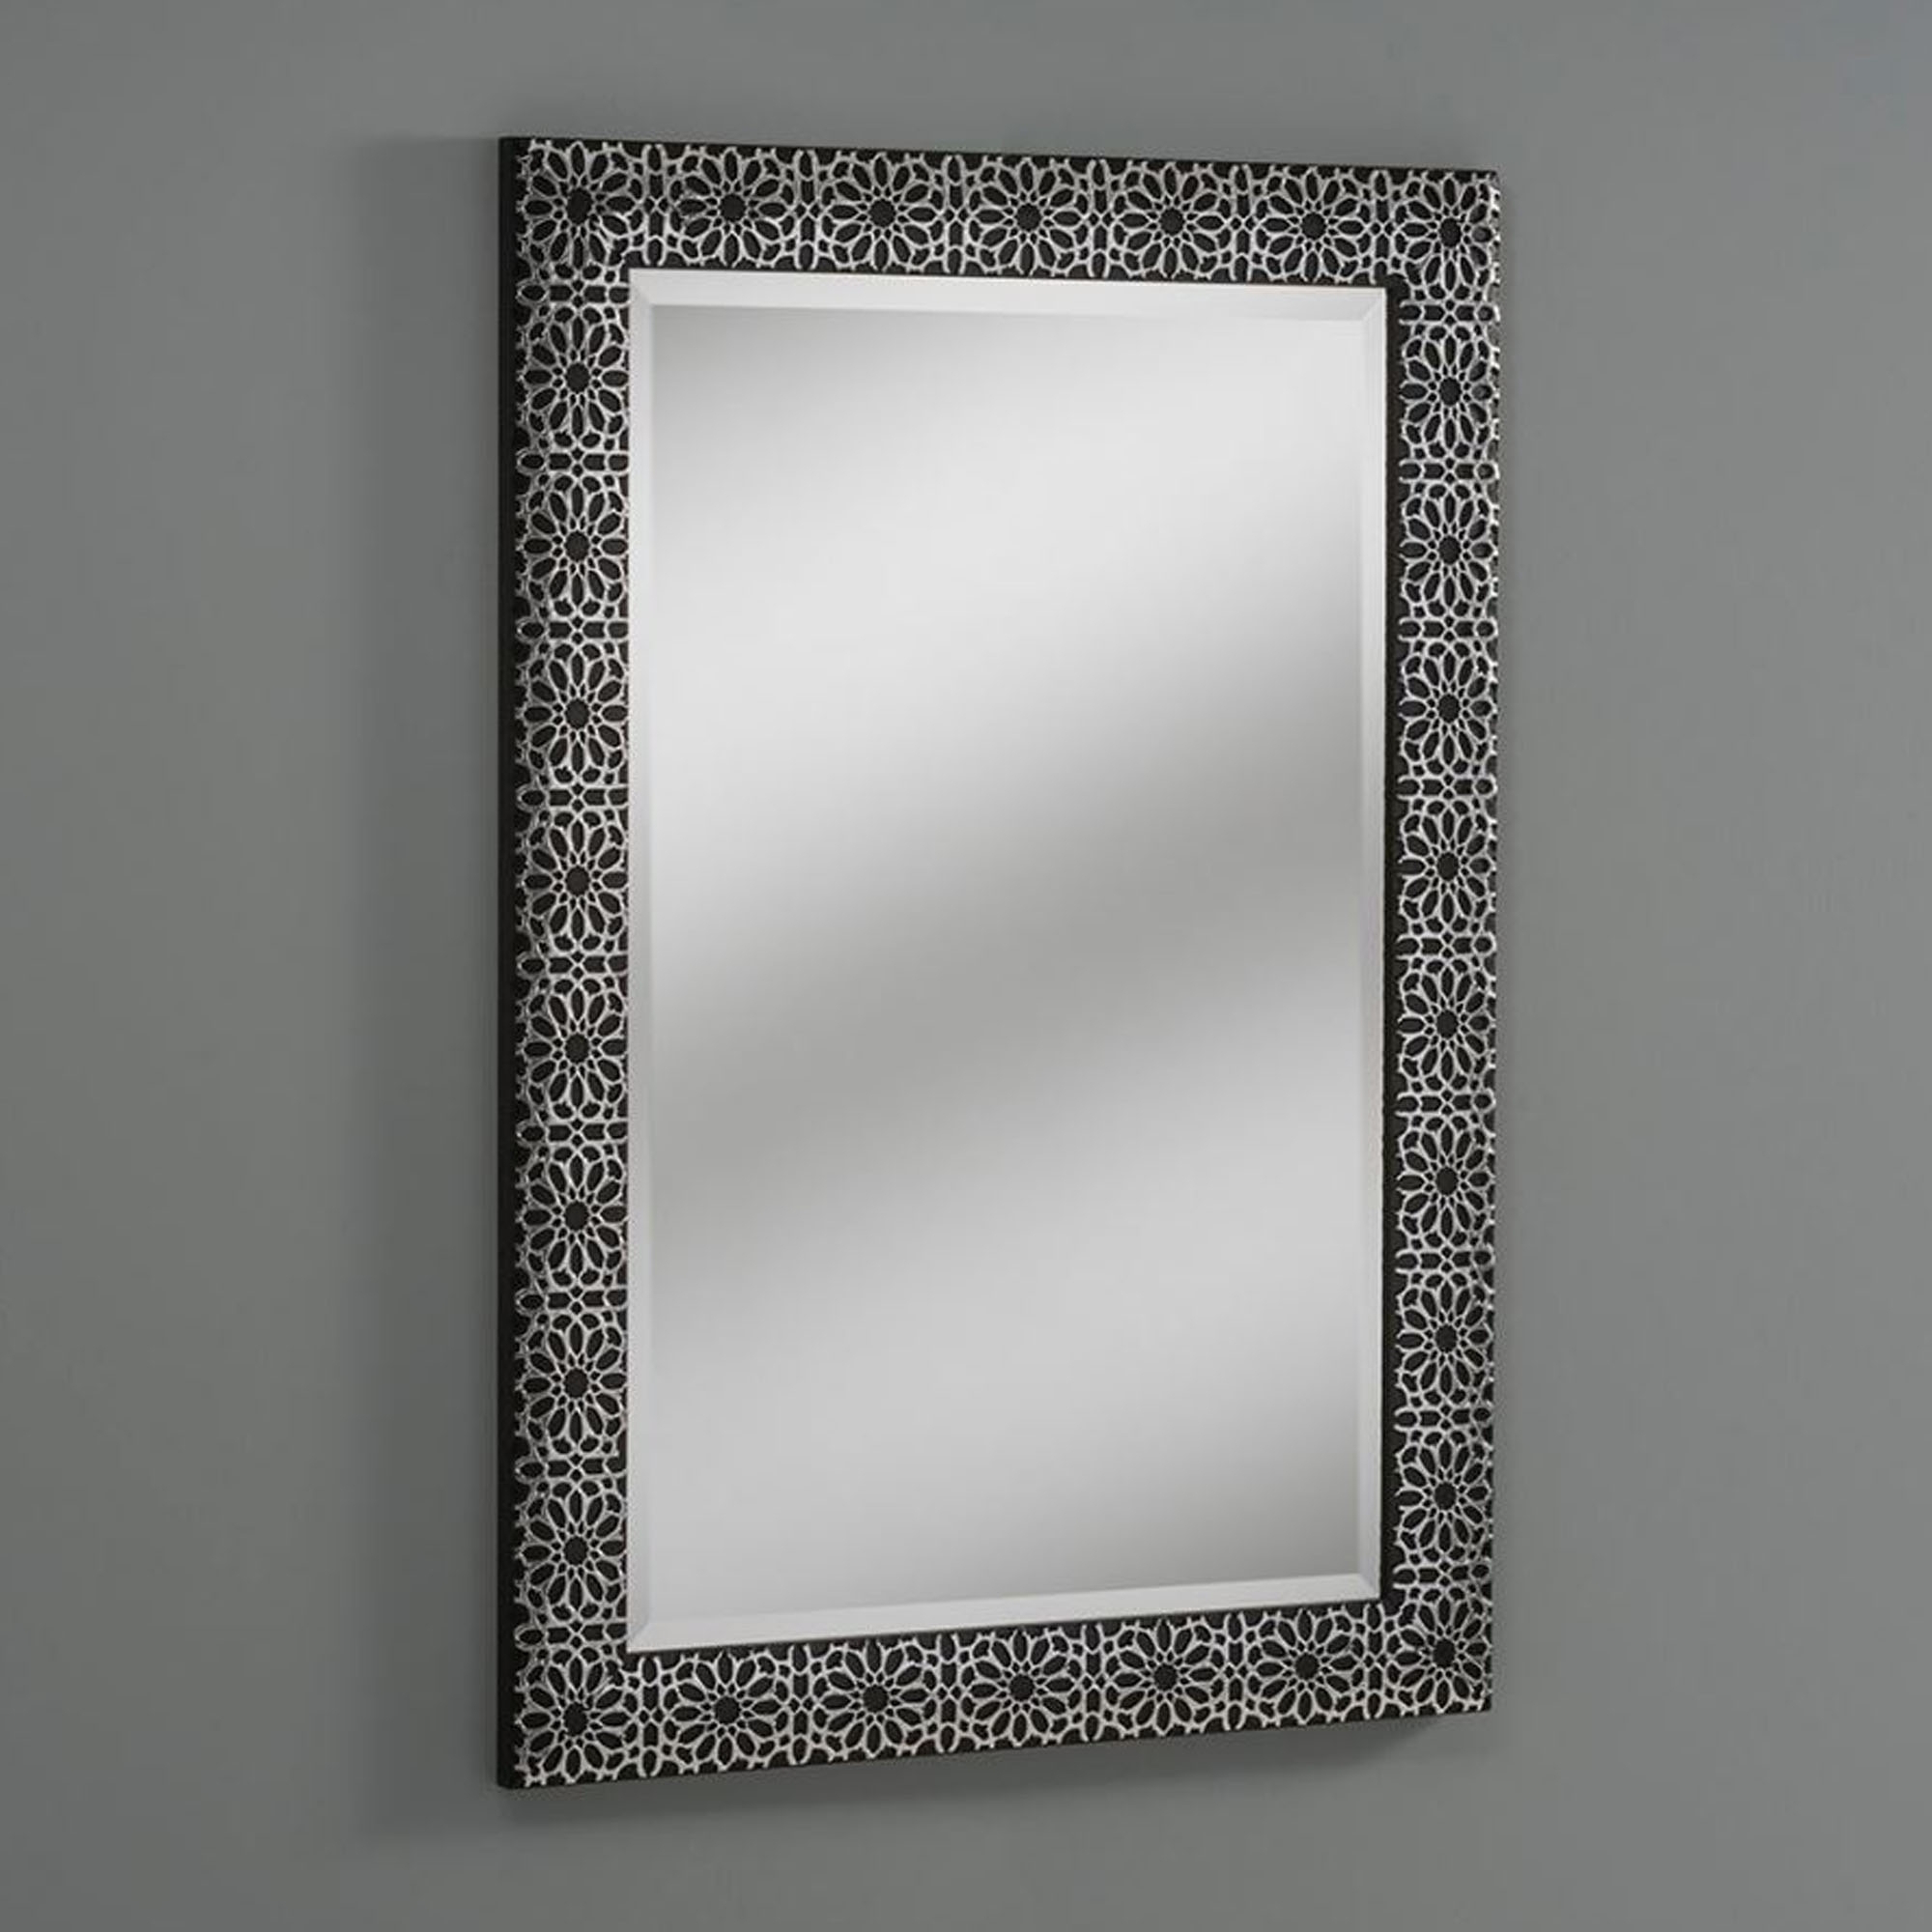 Black Decorative Wall Mirrors Inside Most Recent Petal Black Decorative Wall Mirror (View 7 of 20)